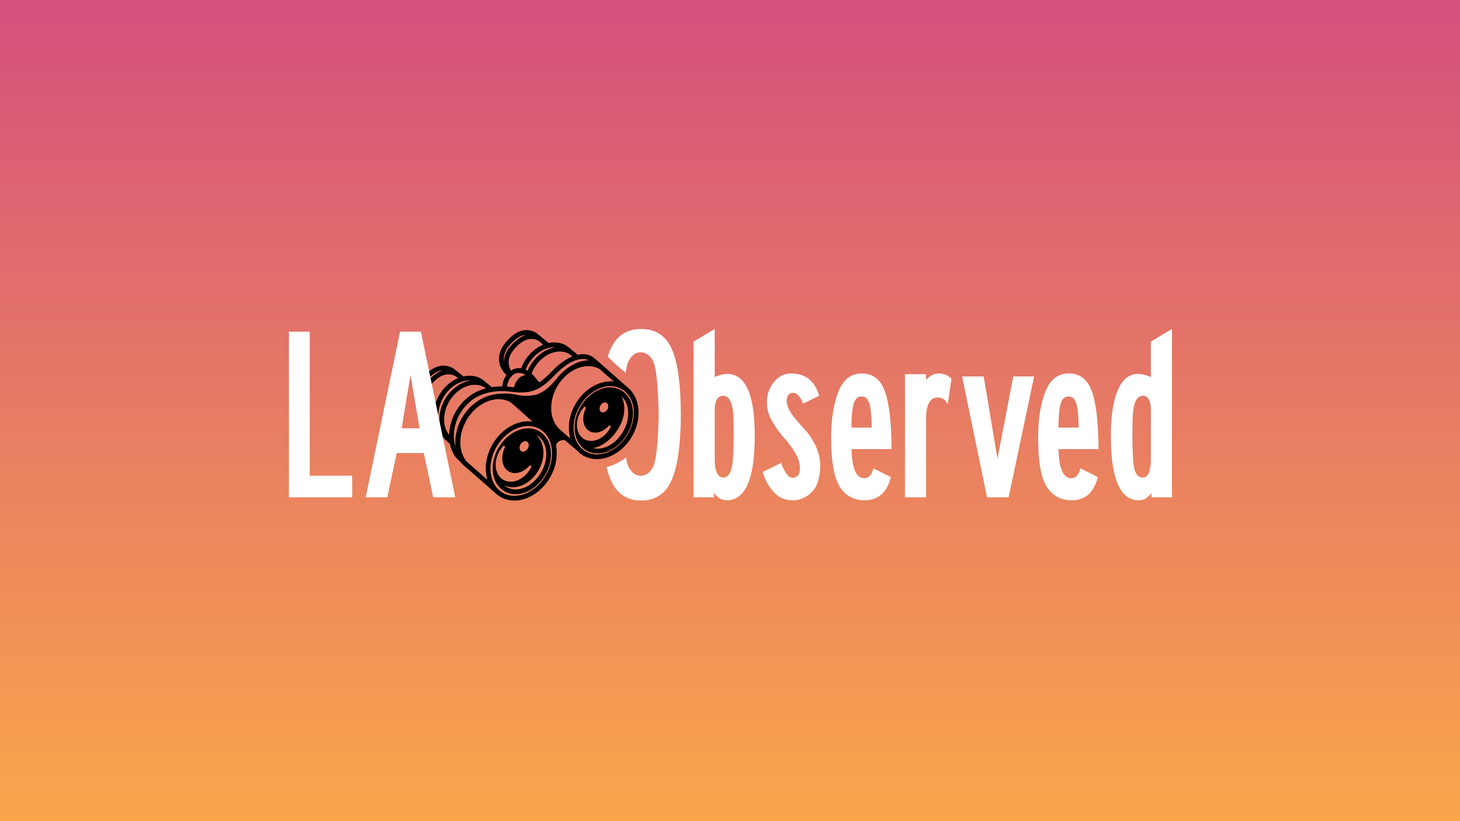 One of the services we like to provide at LA Observed is to take listeners and readers behind the scenes in Los Angeles, to give a glimpse, where we can, inside the doors that usually stay closed to most of us. Today we're going inside a true bastion of old-school Los Angeles privilege and power...